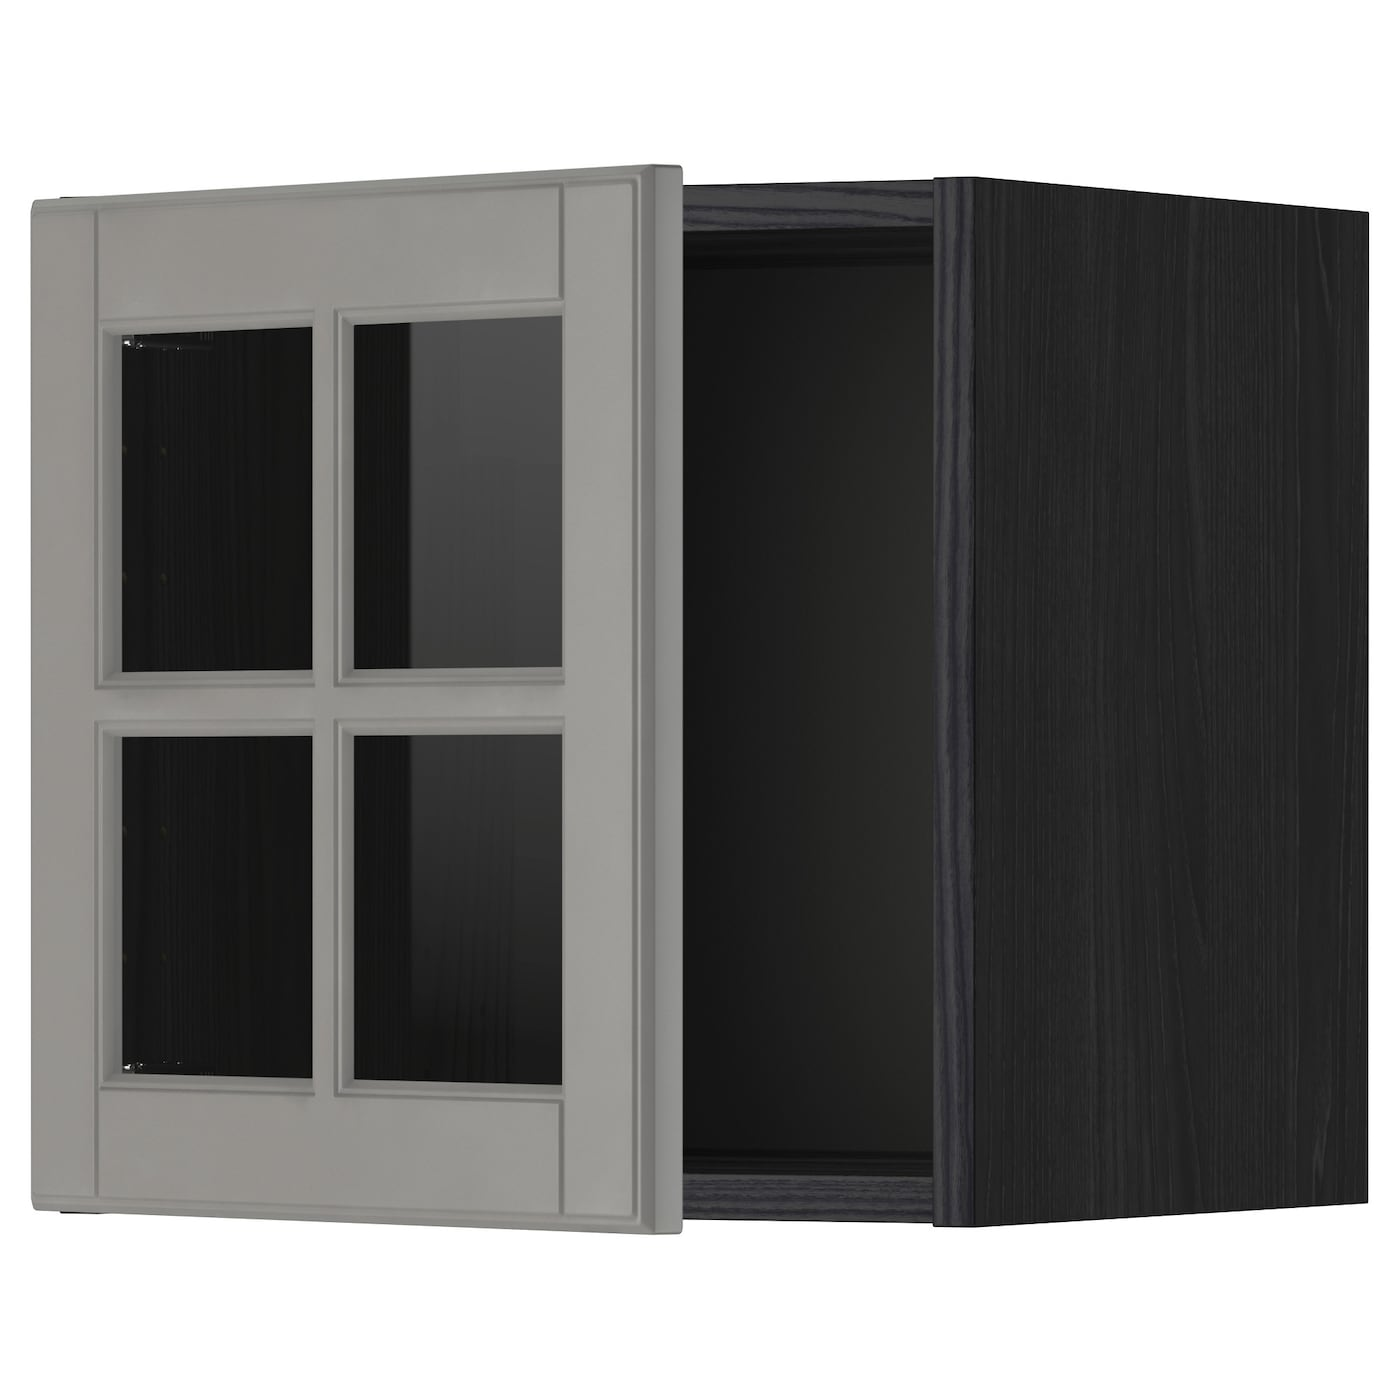 Metod Wall Cabinet With Glass Door Blackbodbyn Grey 40 X 40 Cm Ikea